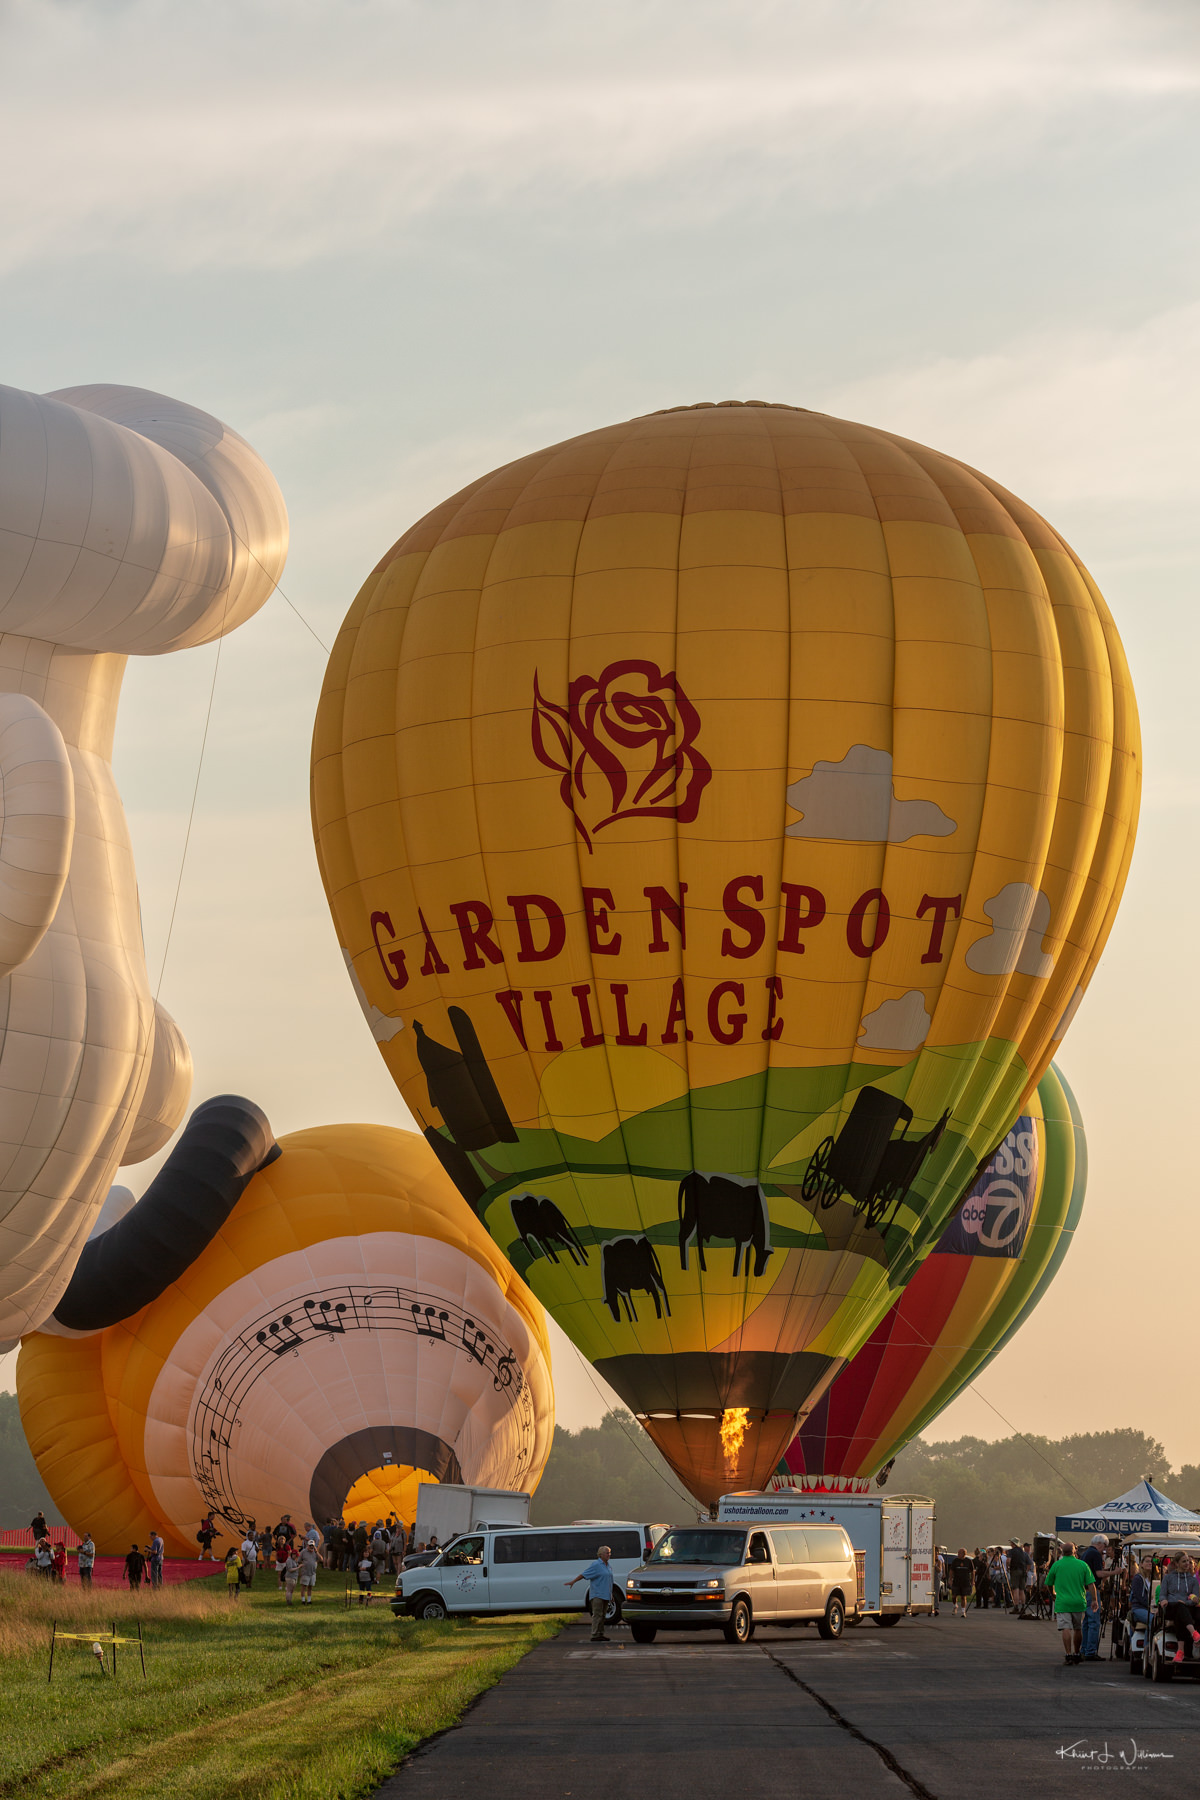 QuickChek Festival of Ballooning pre festival Media Launch QuickChek Festival of Ballooning Media Launch Canon EOS 5D Mark III 20180727 6799 Edit blog